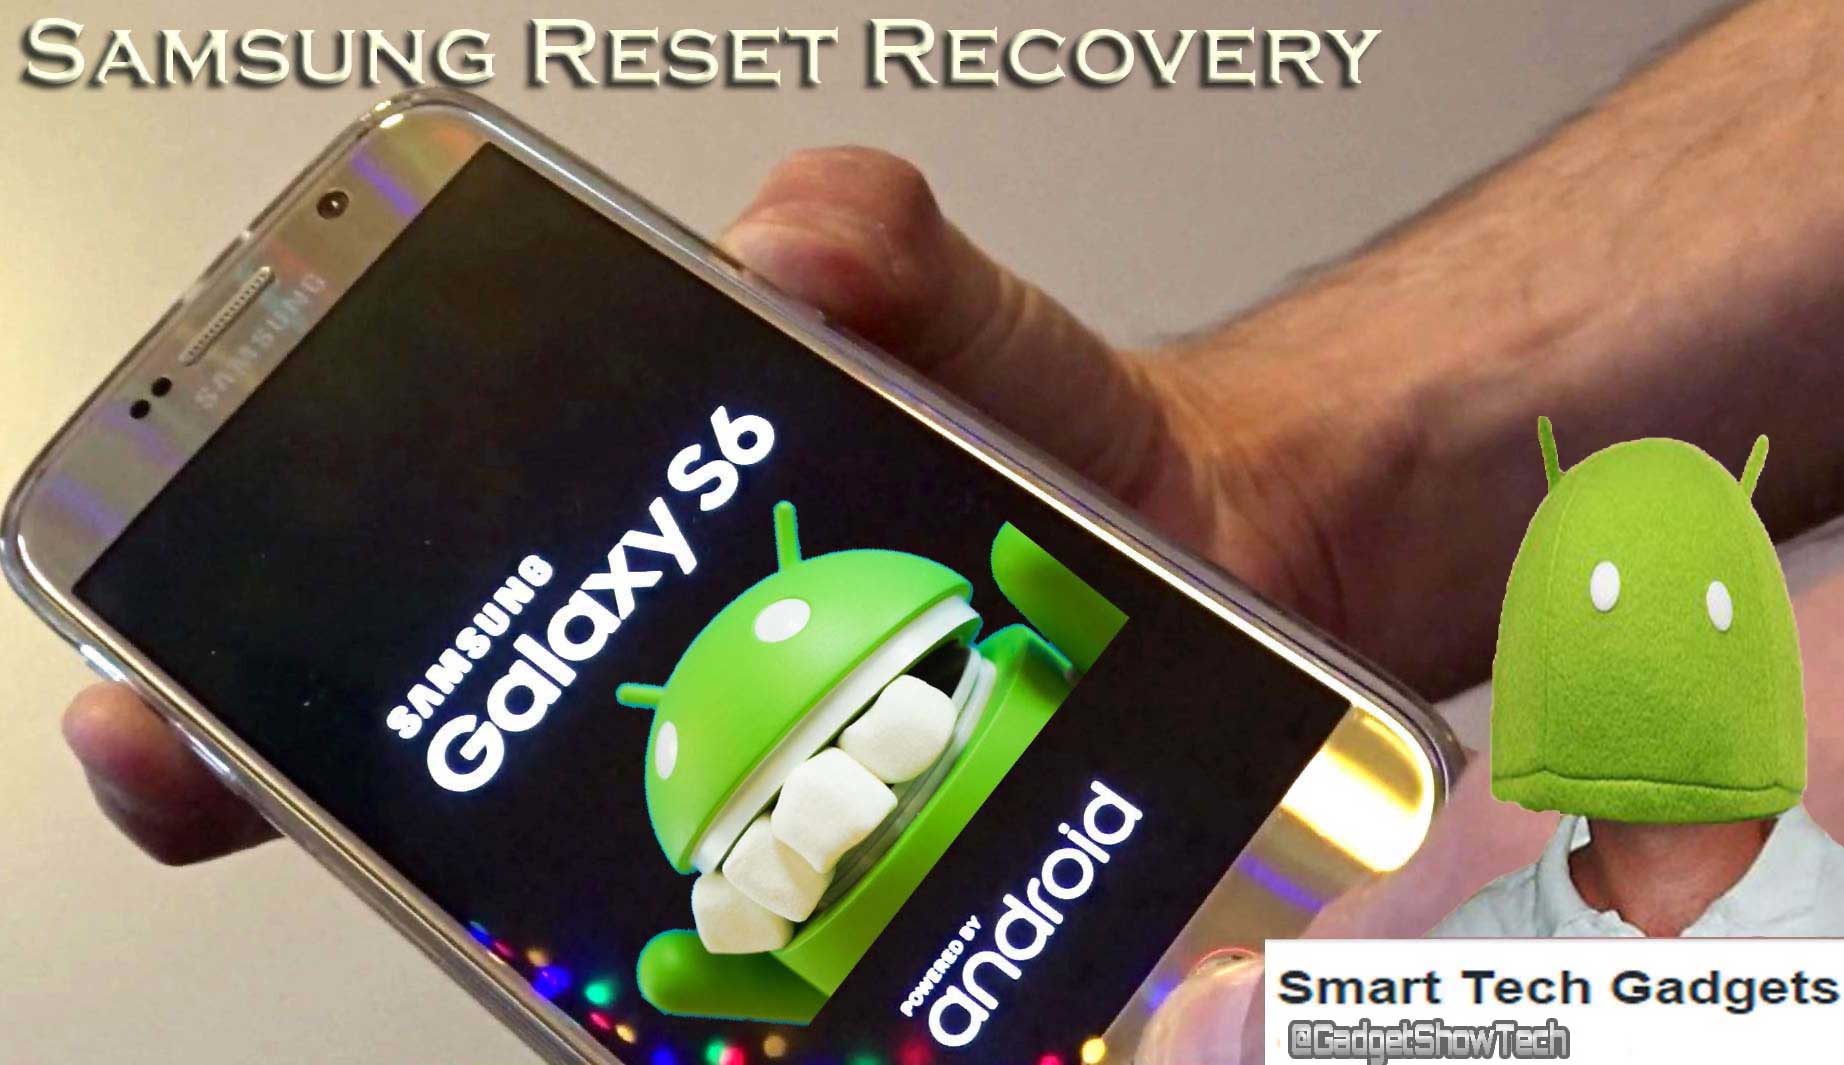 HOW TO RESET PASSWORD ON SAMSUNG GALAXY S6 WHEN LOCKED OUT